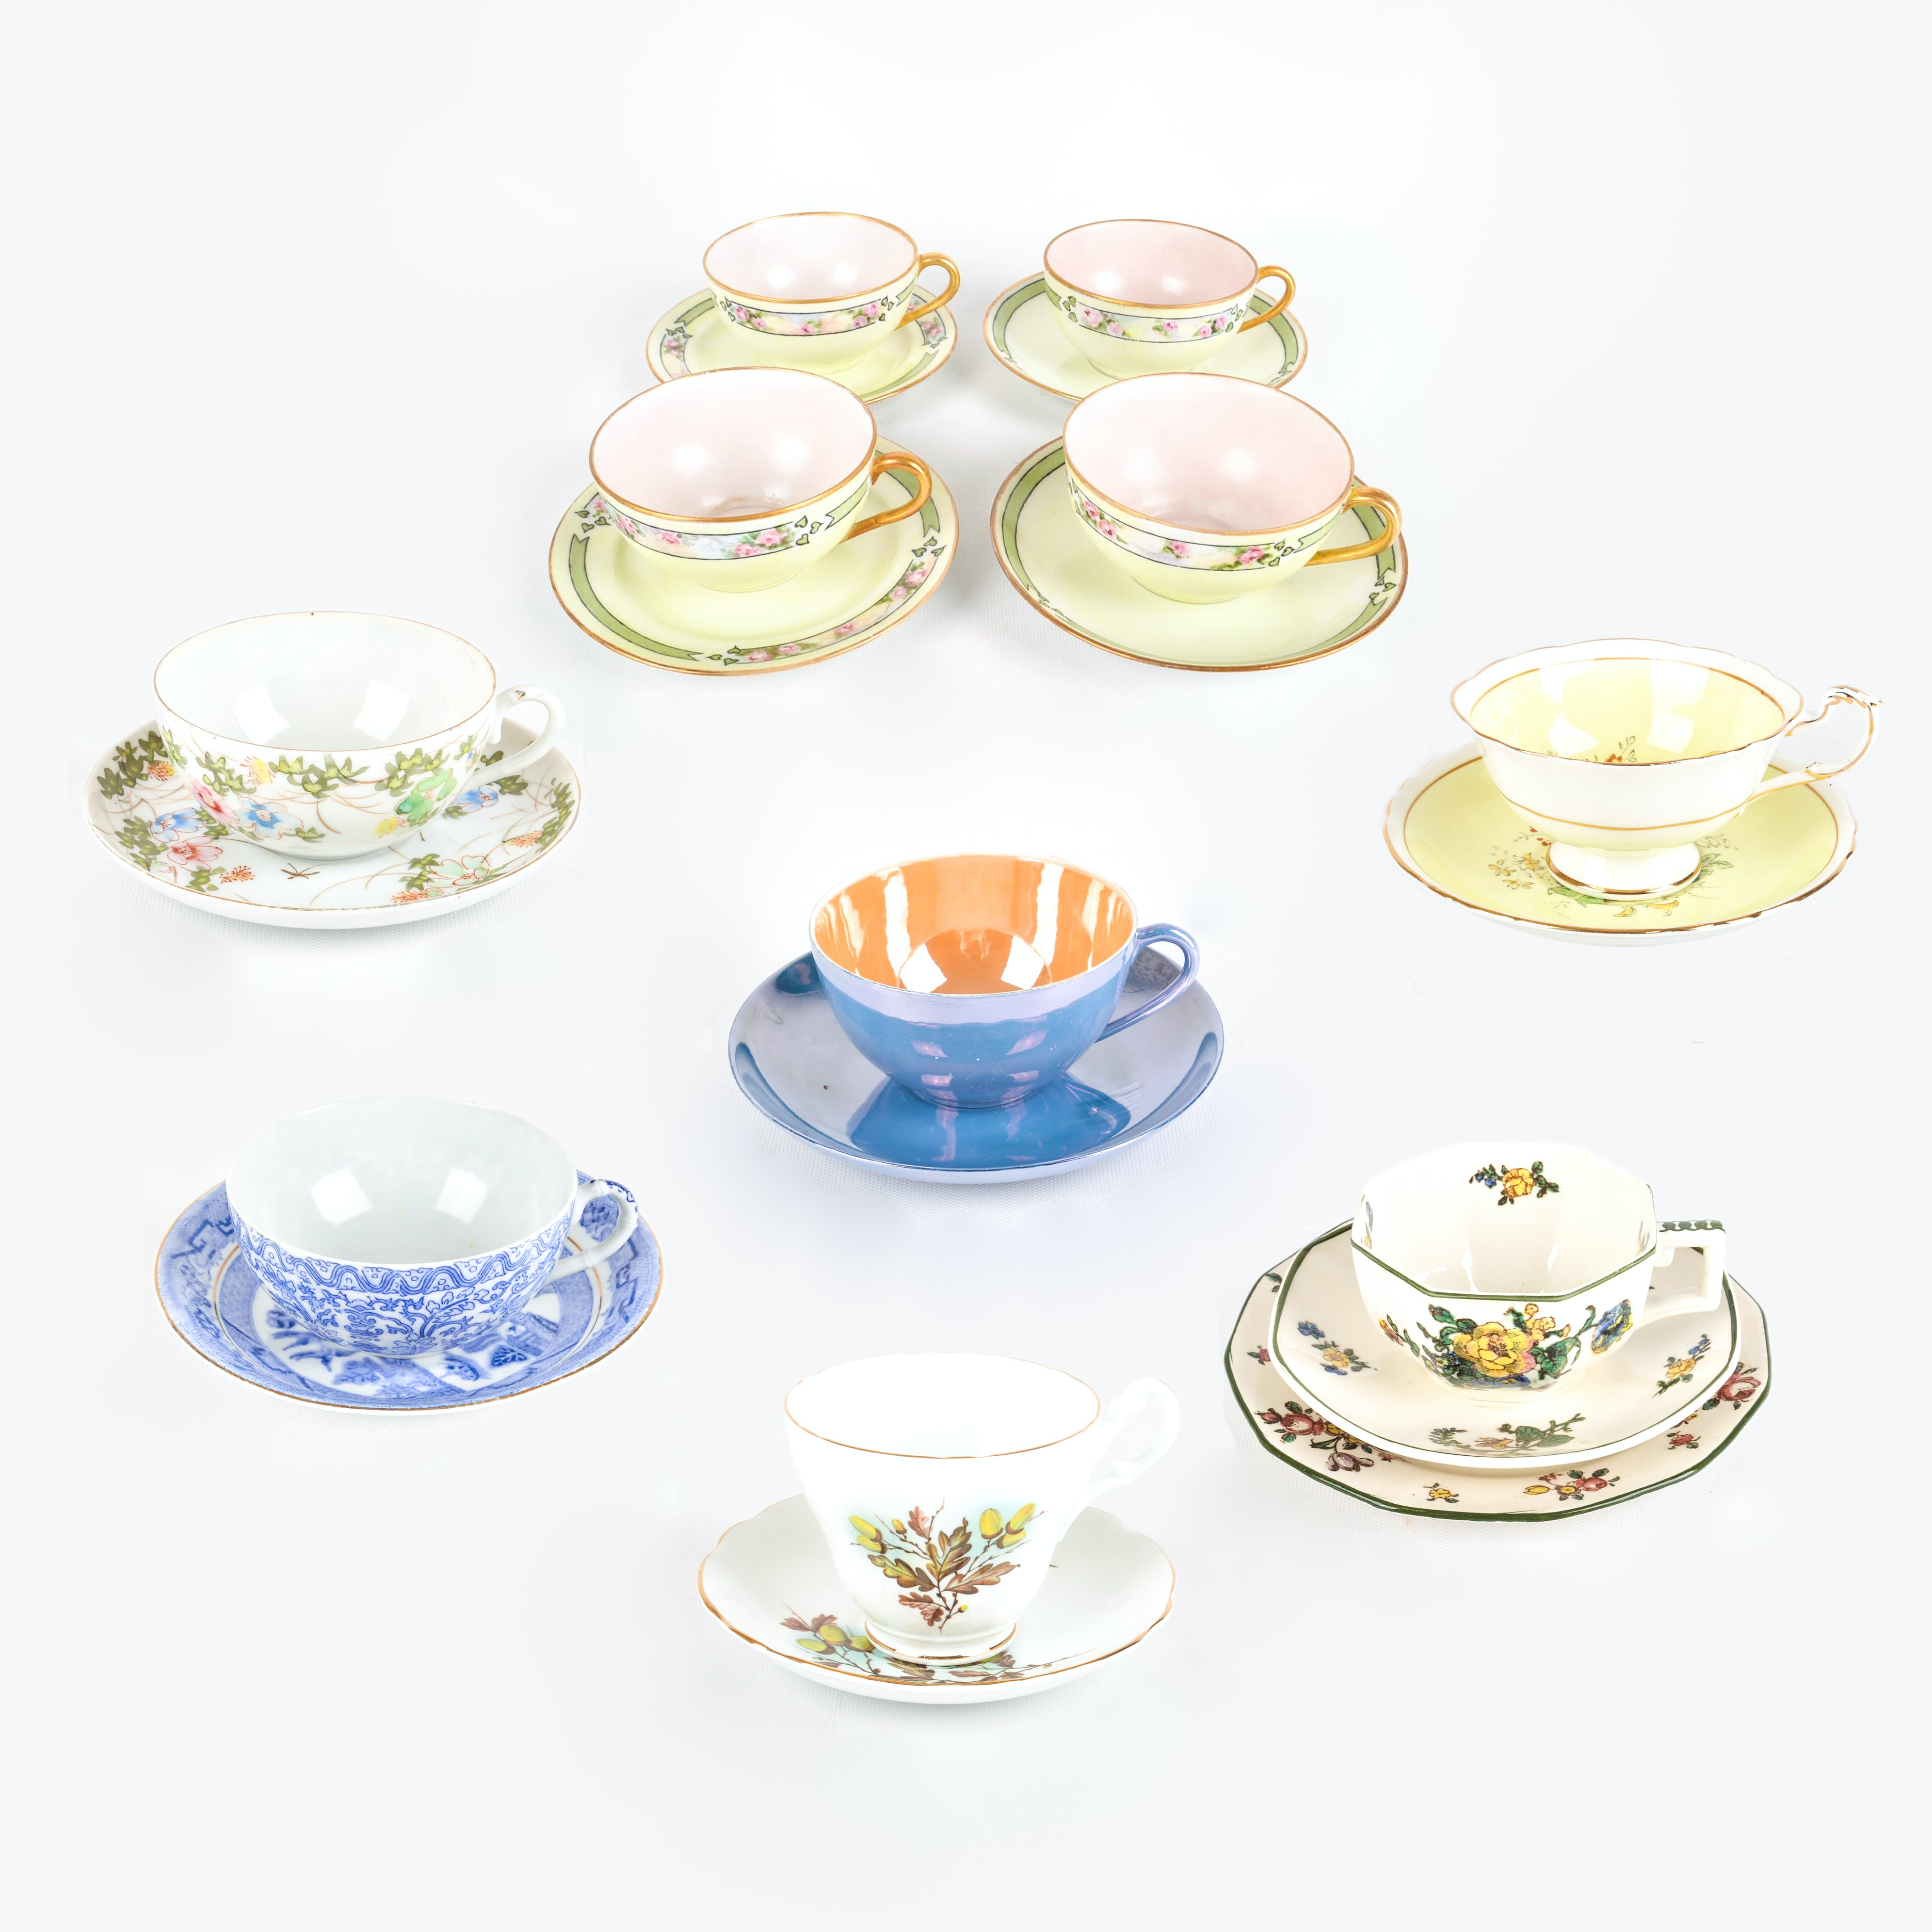 Nippon and English Hand Painted Bone China Teacups and Saucers